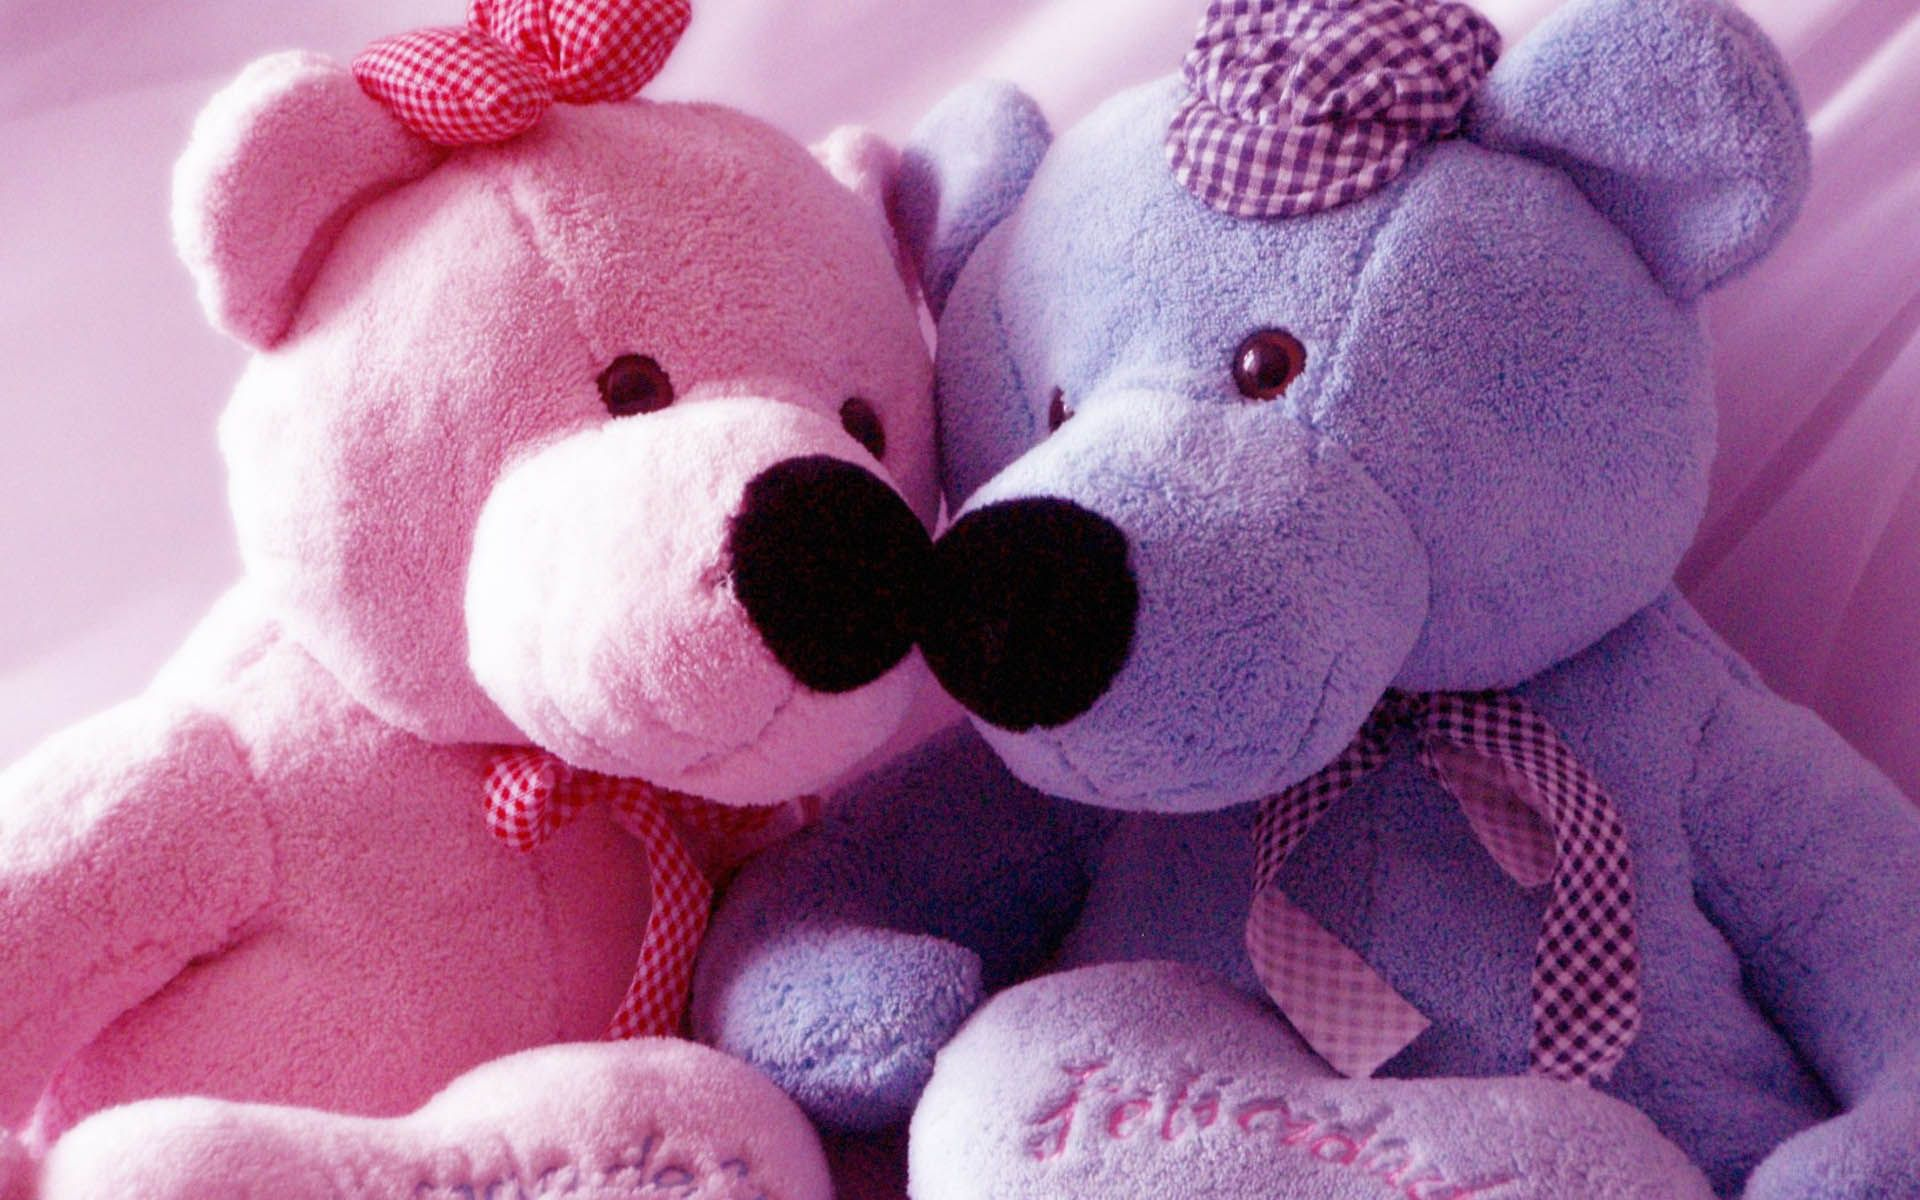 pink and blue teddy bear wallpaper computer 62 7639 wallpaper